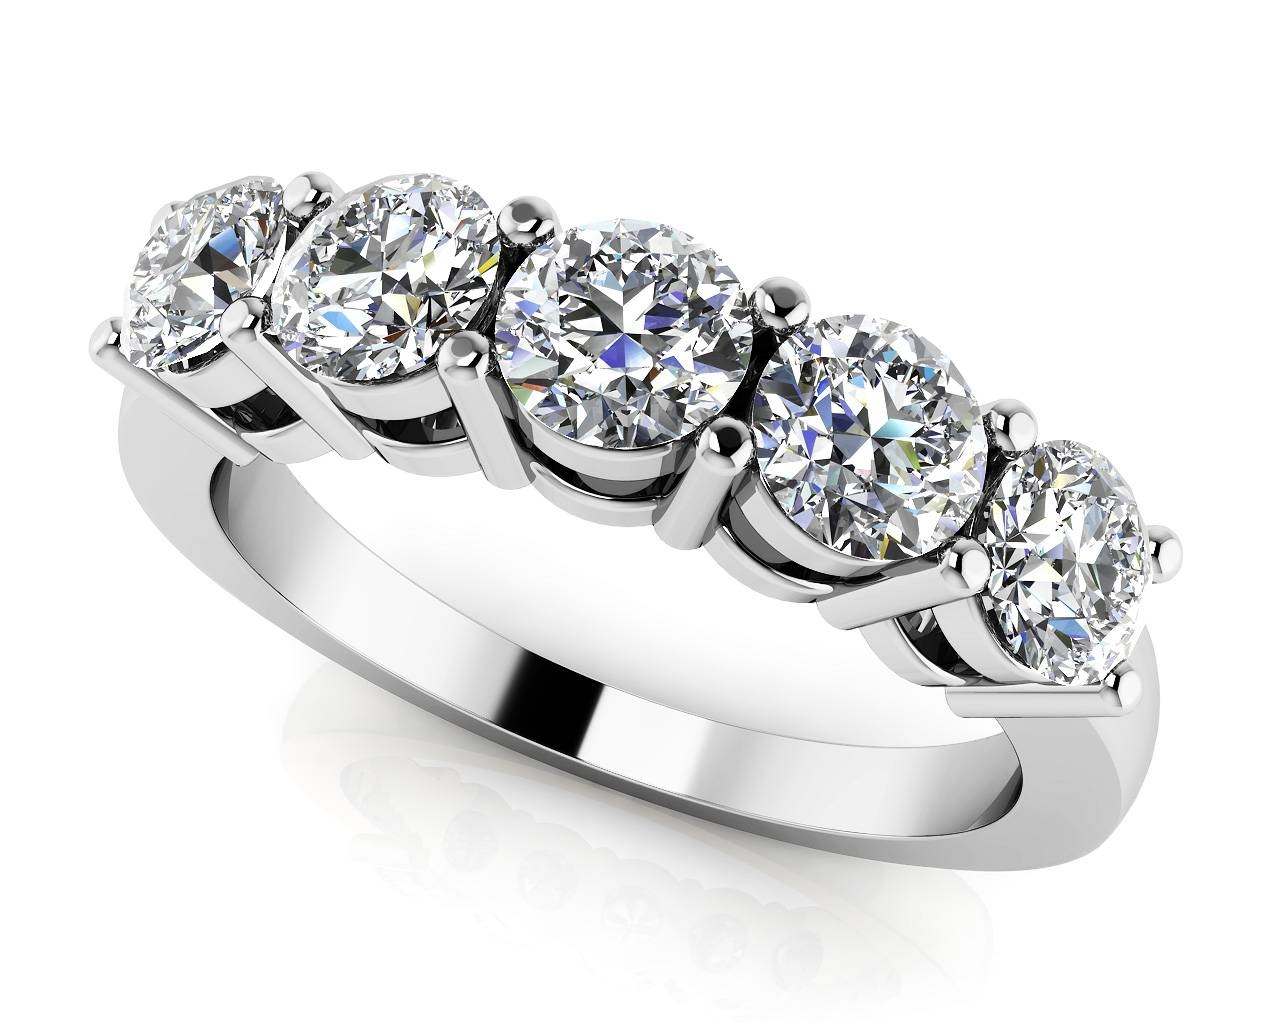 Design Your Own Diamond Anniversary Ring & Eternity Ring Within Recent 3 Stone Diamond Anniversary Rings (Gallery 11 of 25)